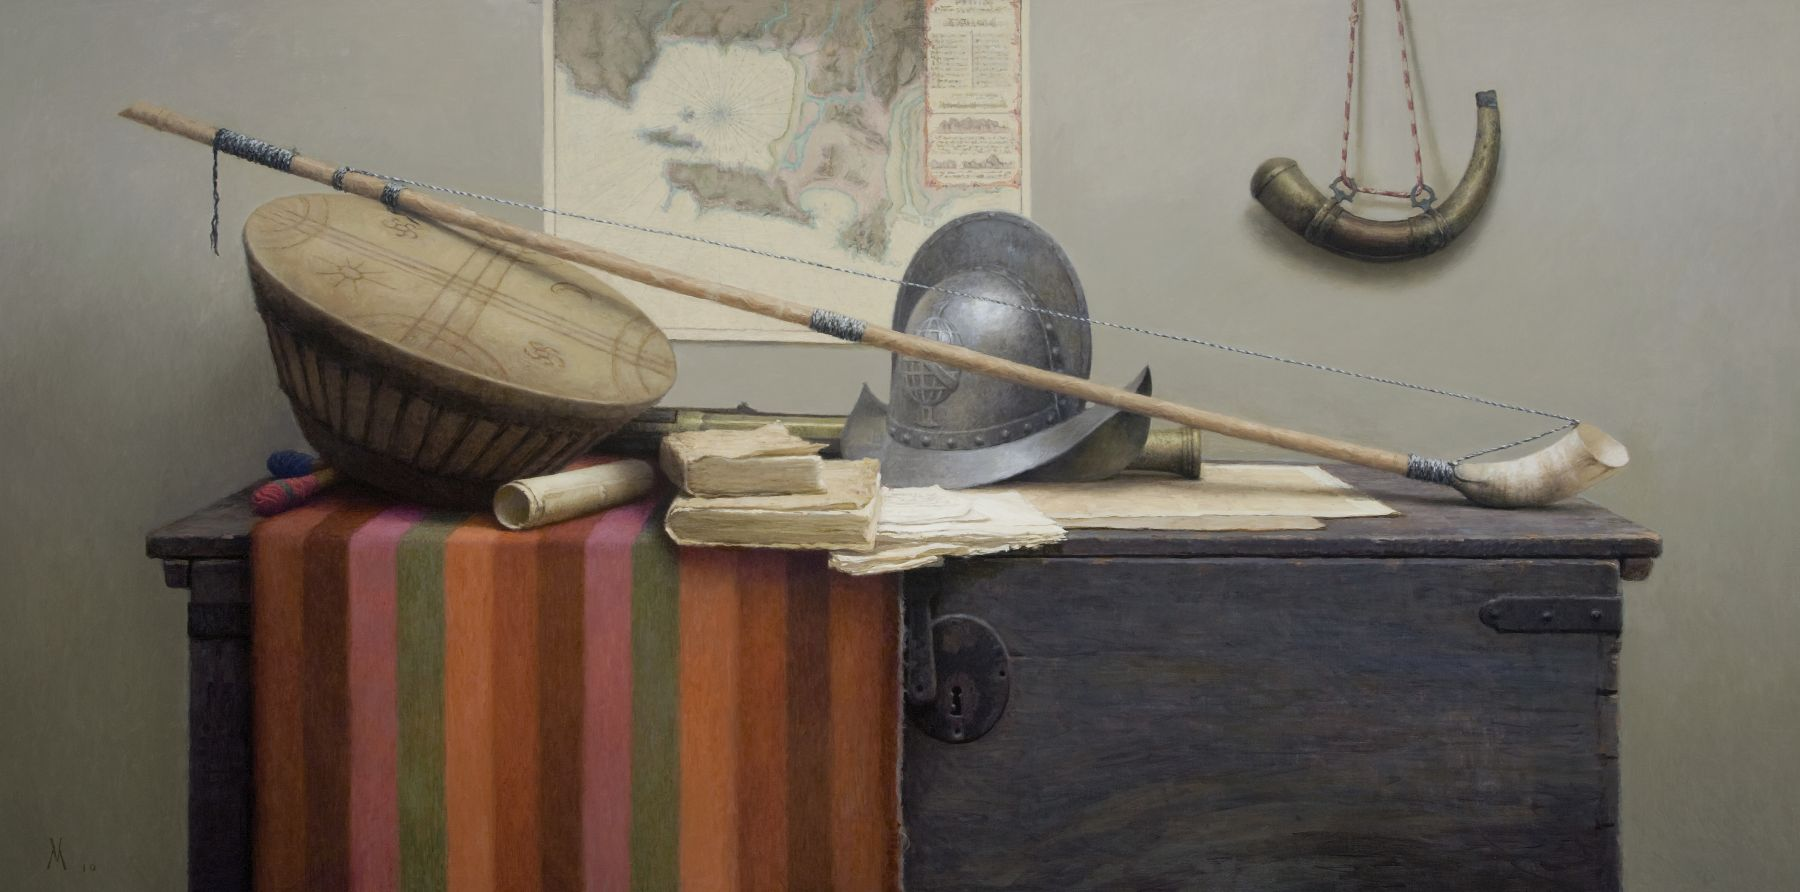 guillermo munoz vera, Colonial Still Life in Araucania, 2010, oil on canvas on panel, 39 3/8 x 78 3/4 inches